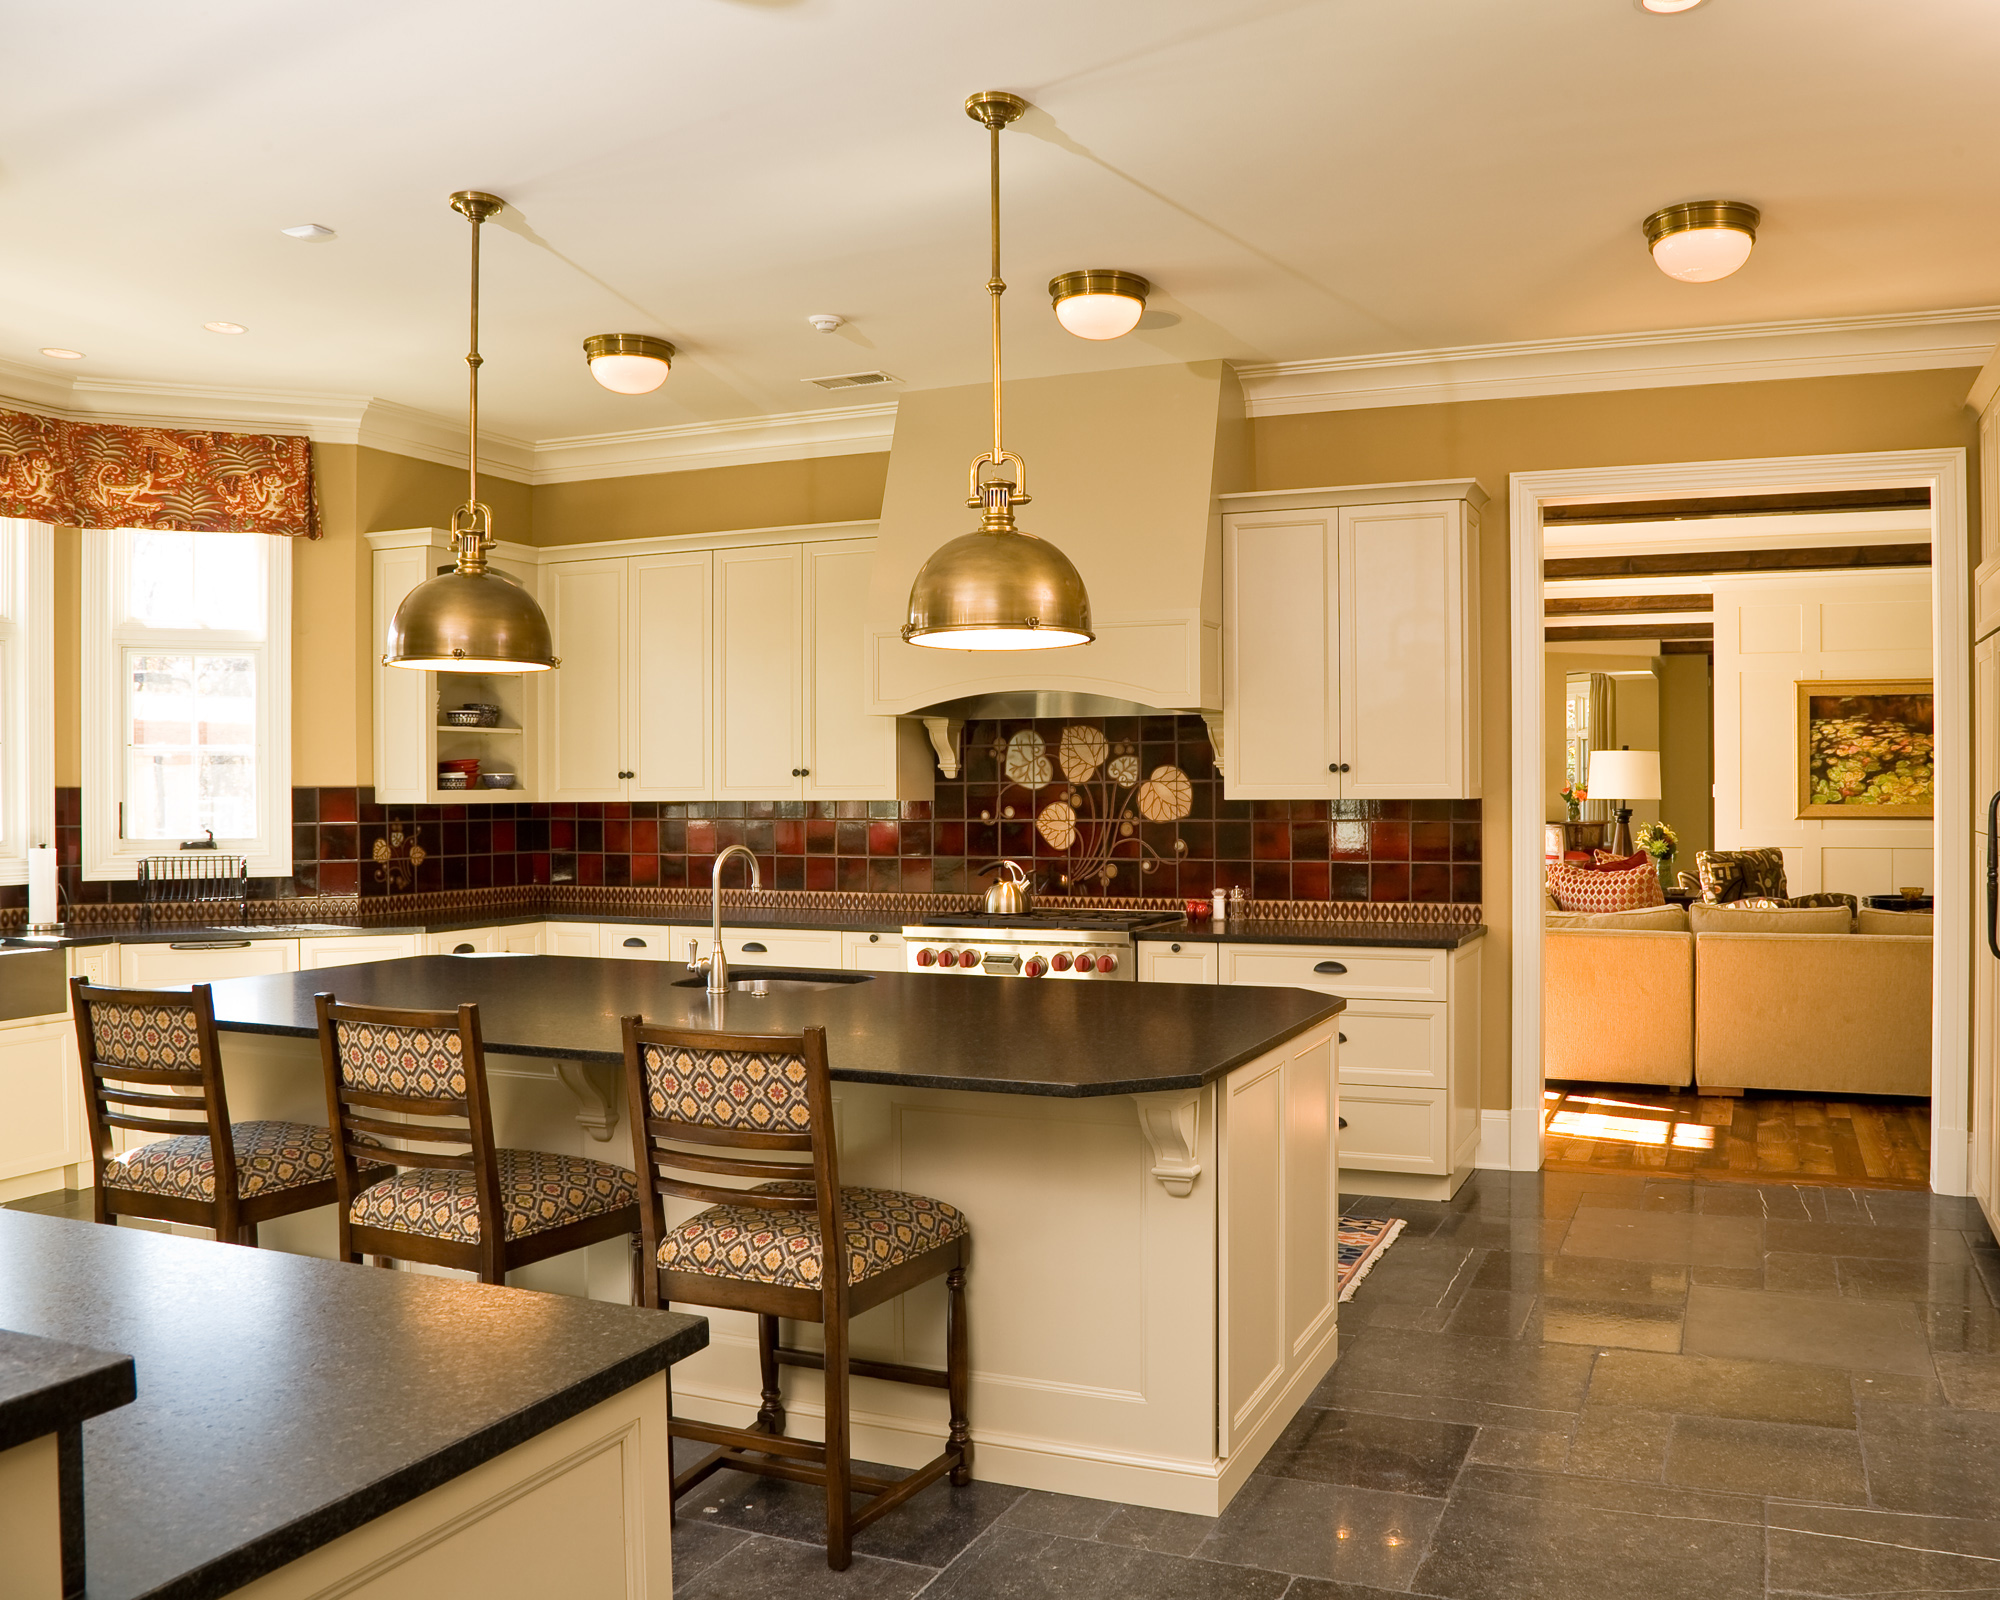 Kitchens breakfast dining rooms photo gallery bowa for Gourmet kitchen island